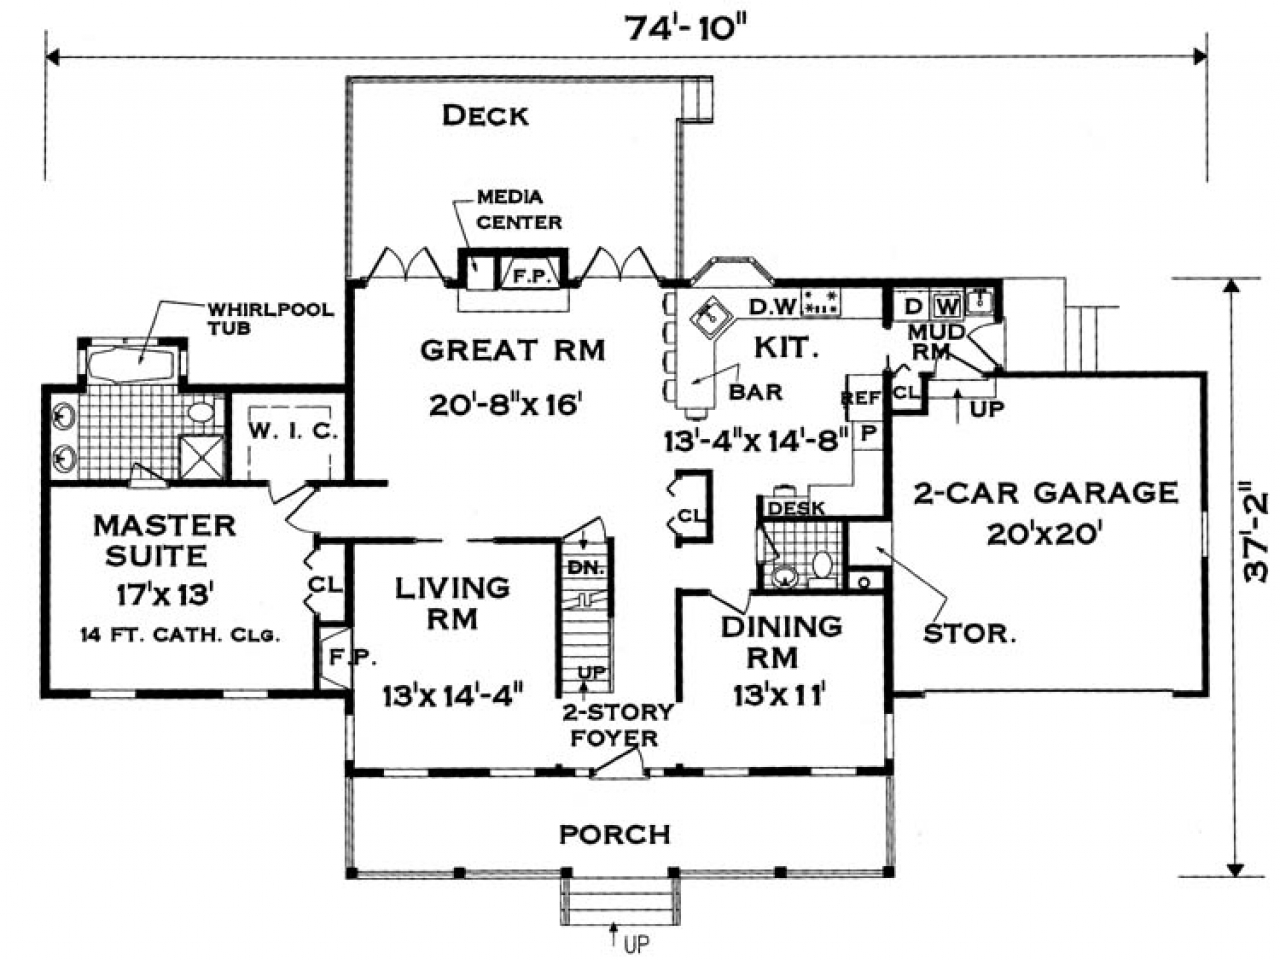 Large family house plans extended family house plans for Family house plans